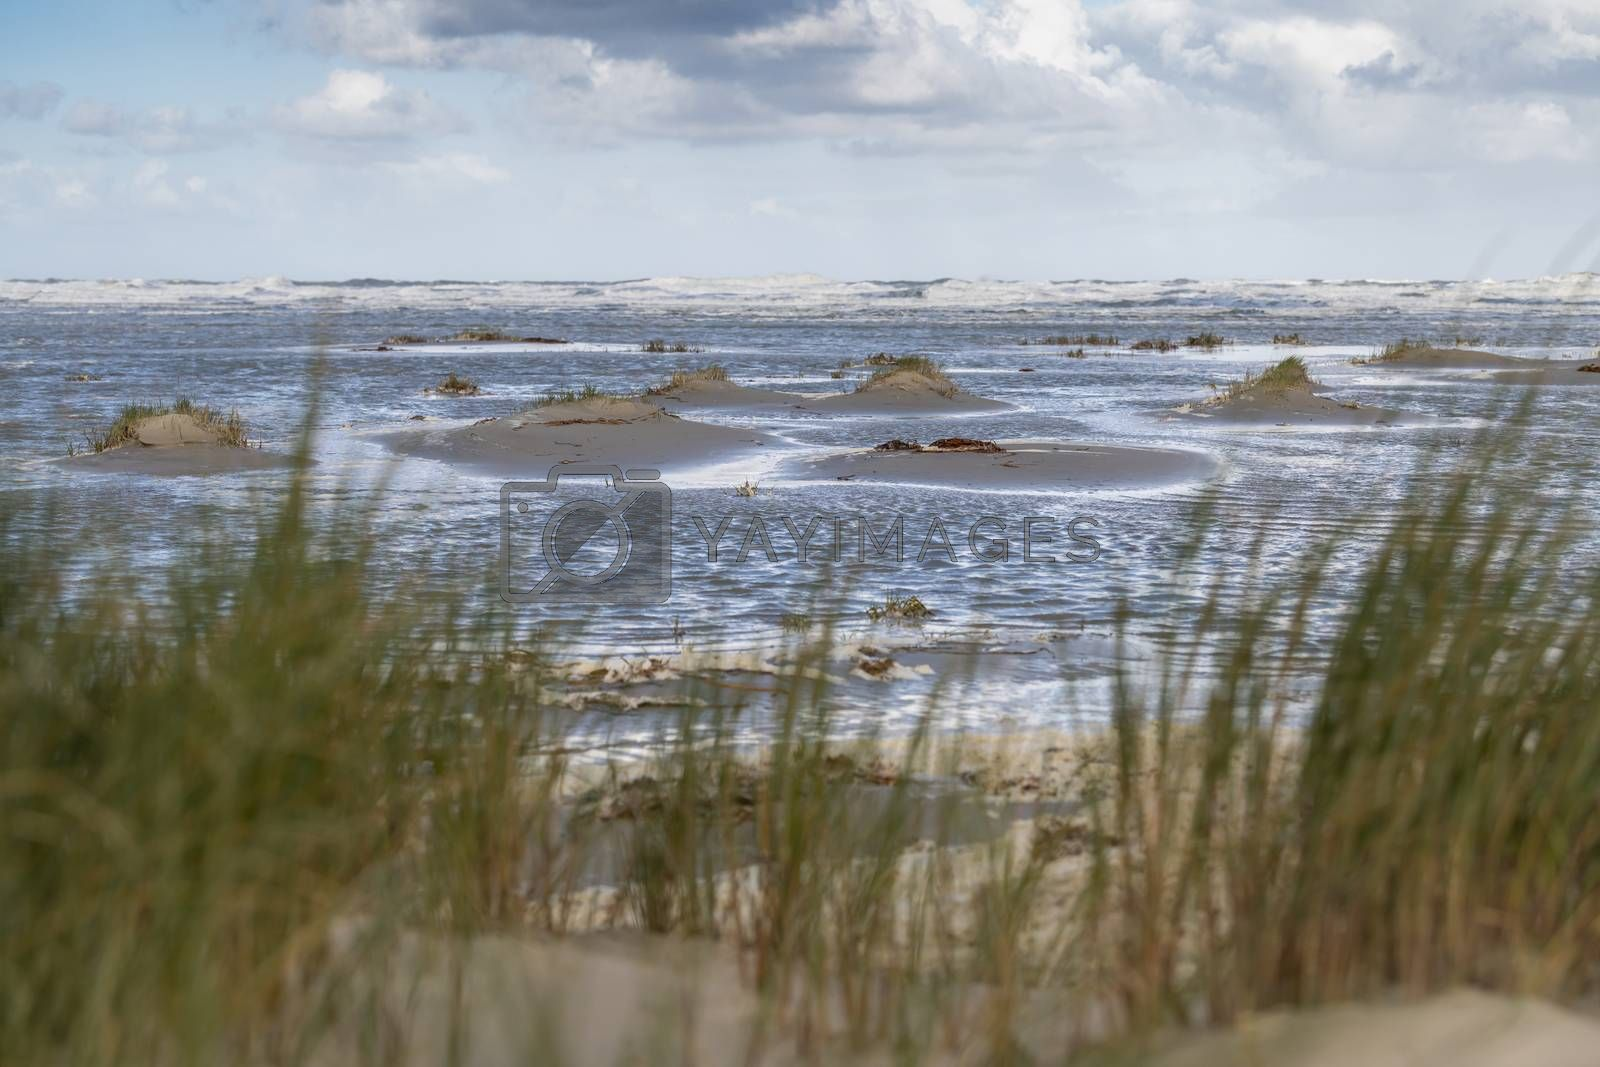 Beach of the frisian island of Terschelling   by Tofotografie